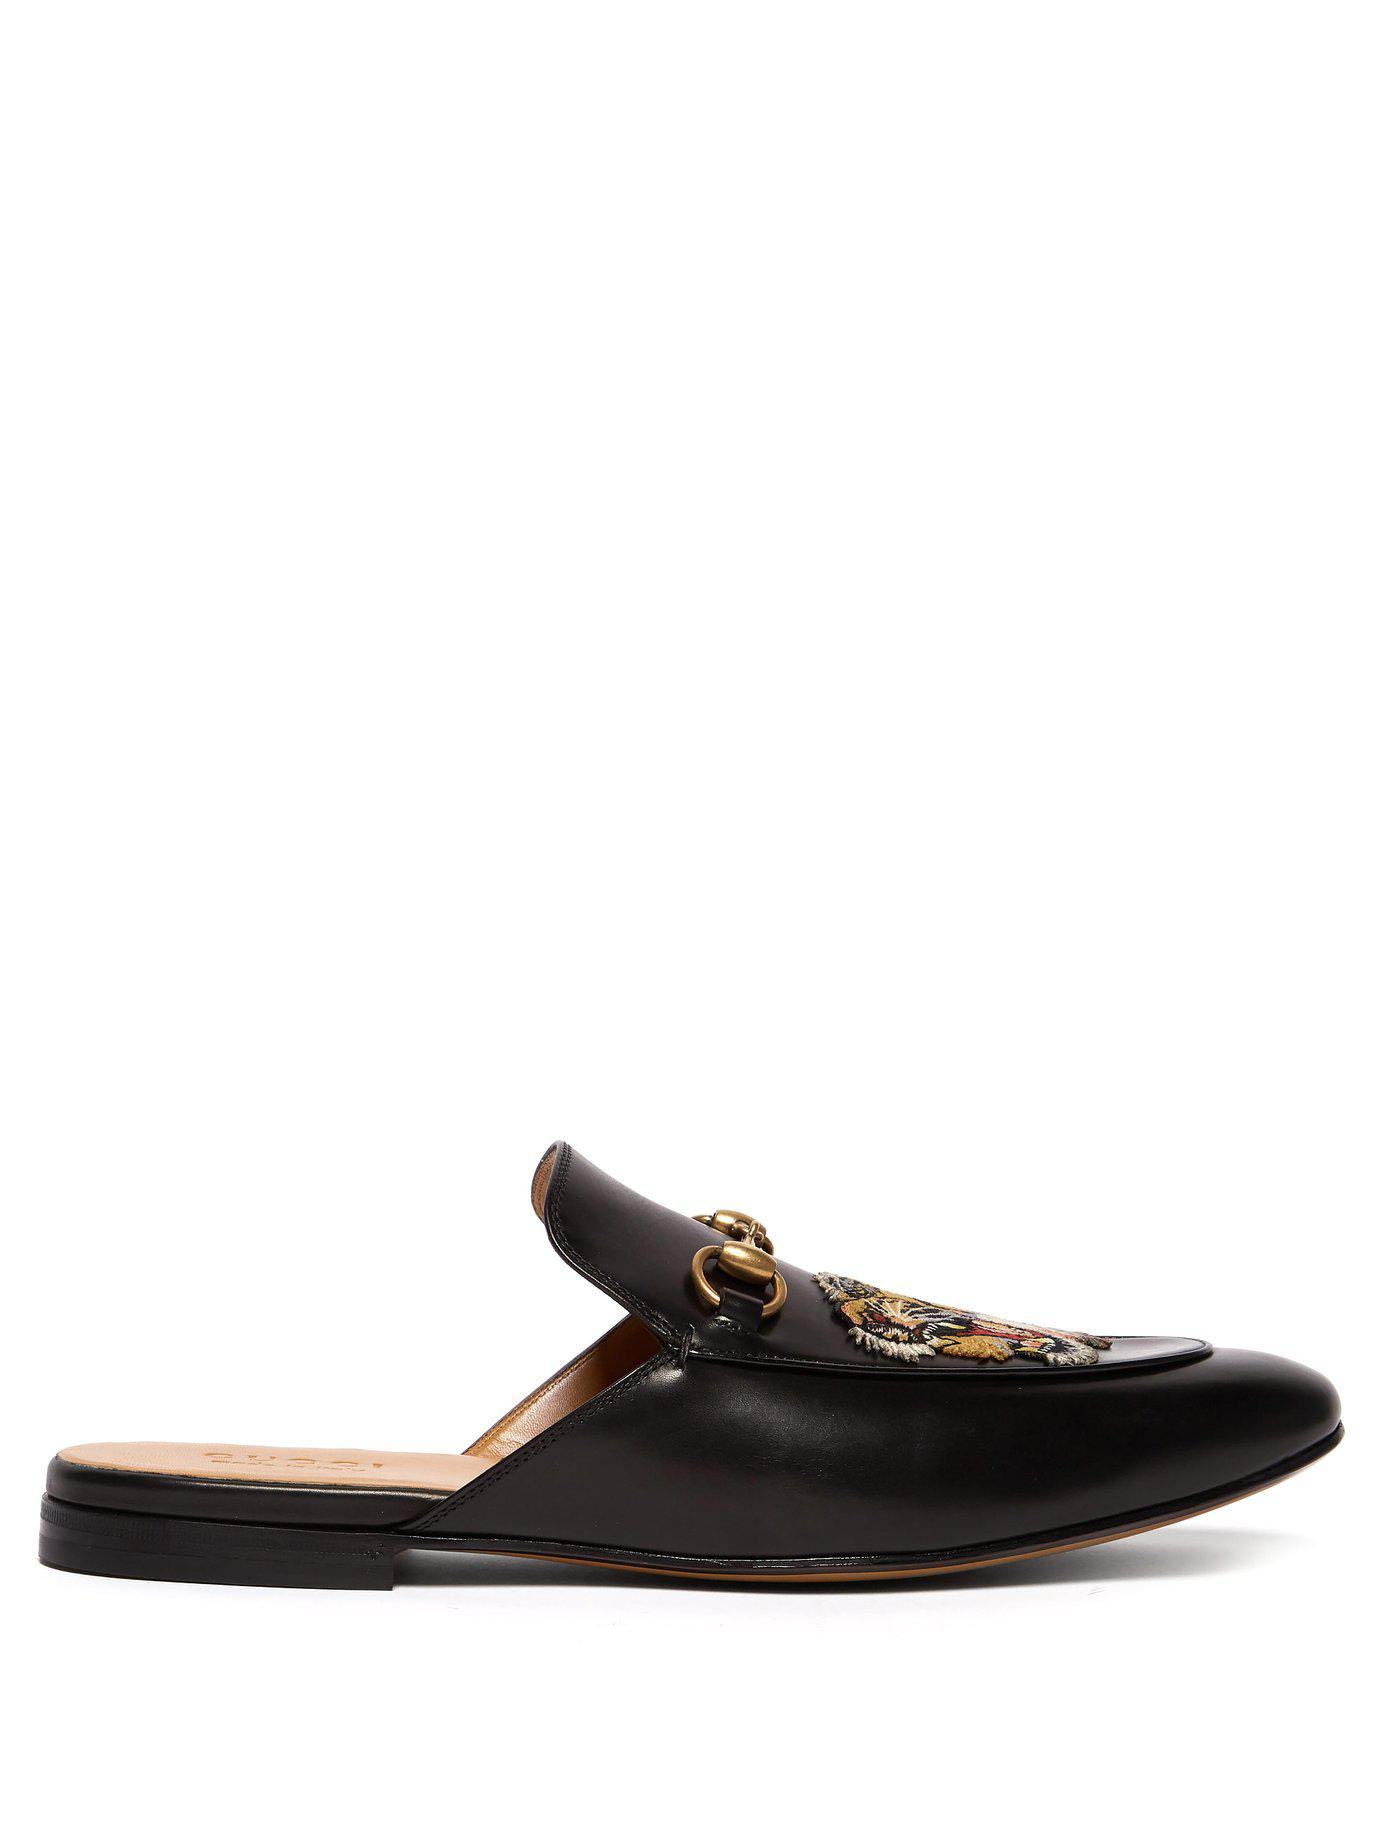 6a688d3b333 Lyst - Gucci Kings Tiger Appliqué Backless Leather Loafers in Black ...